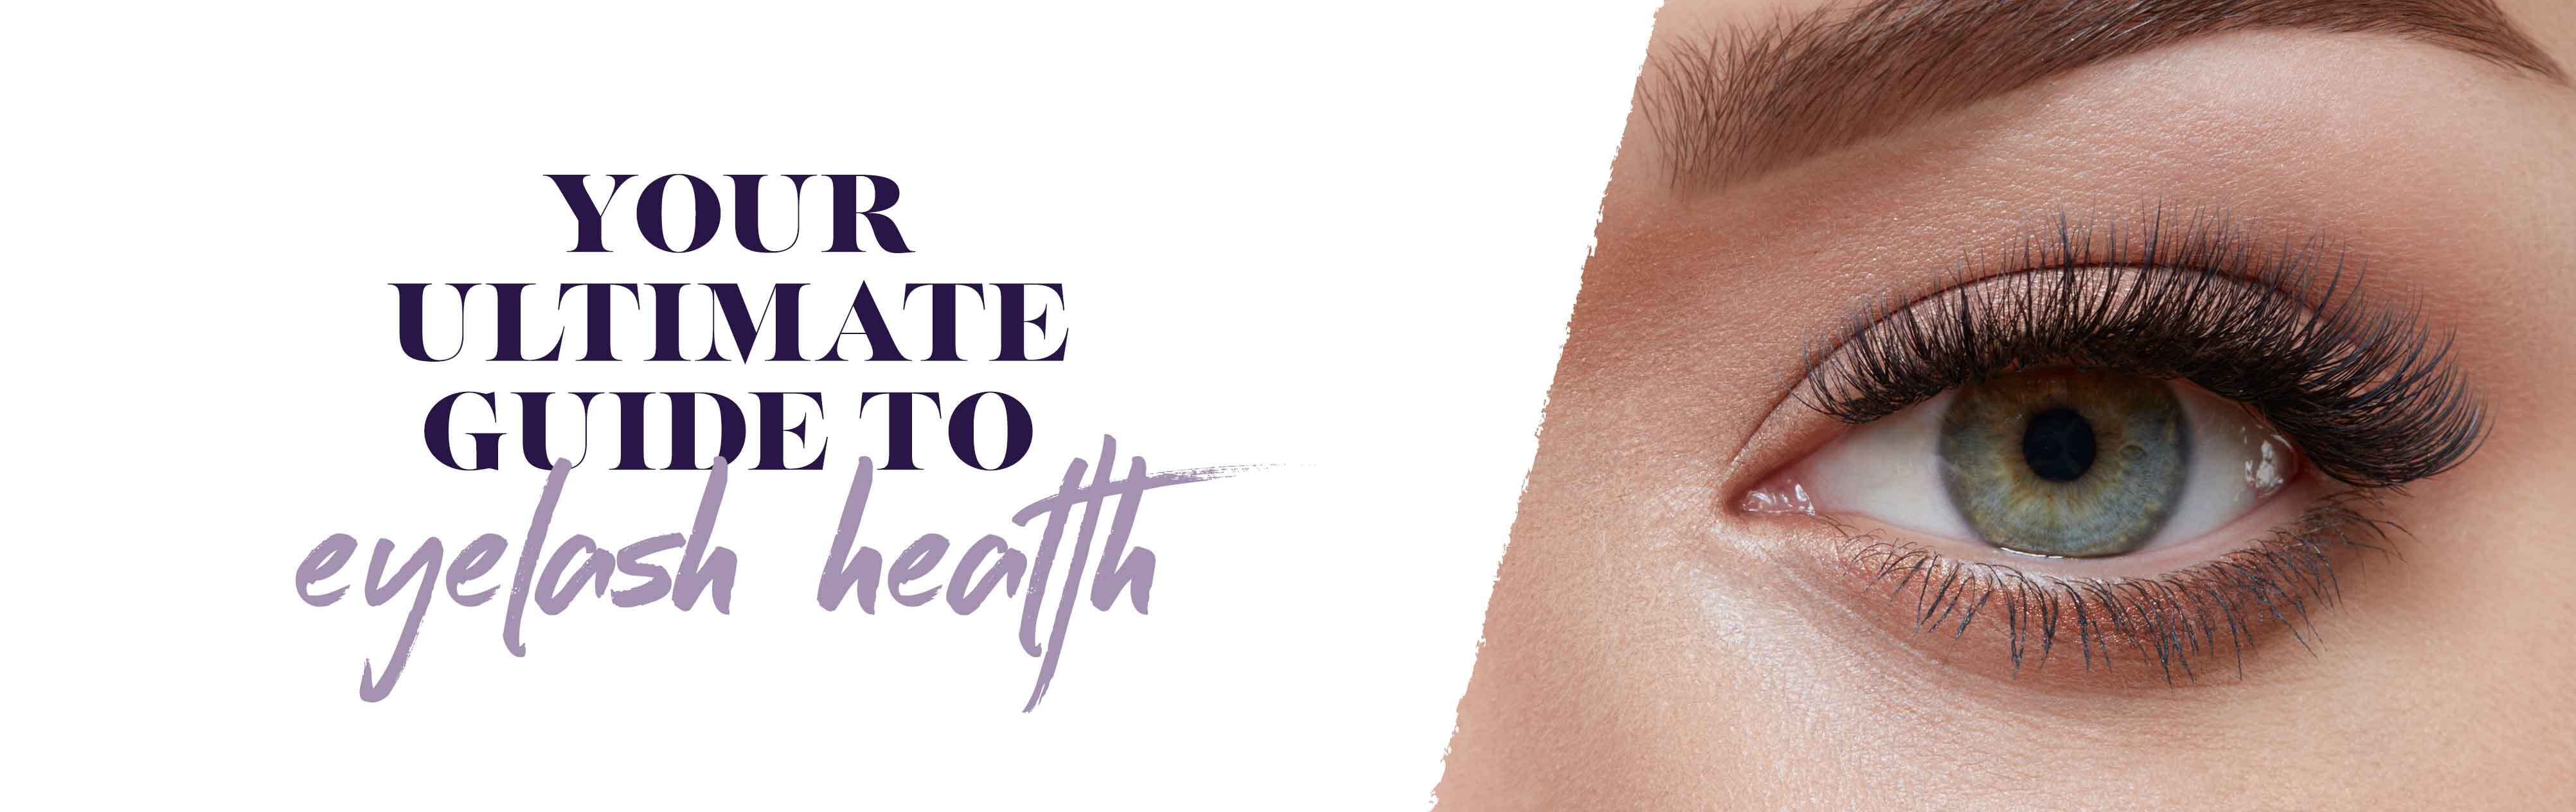 Your Ultimate Guide to Eyelash Health